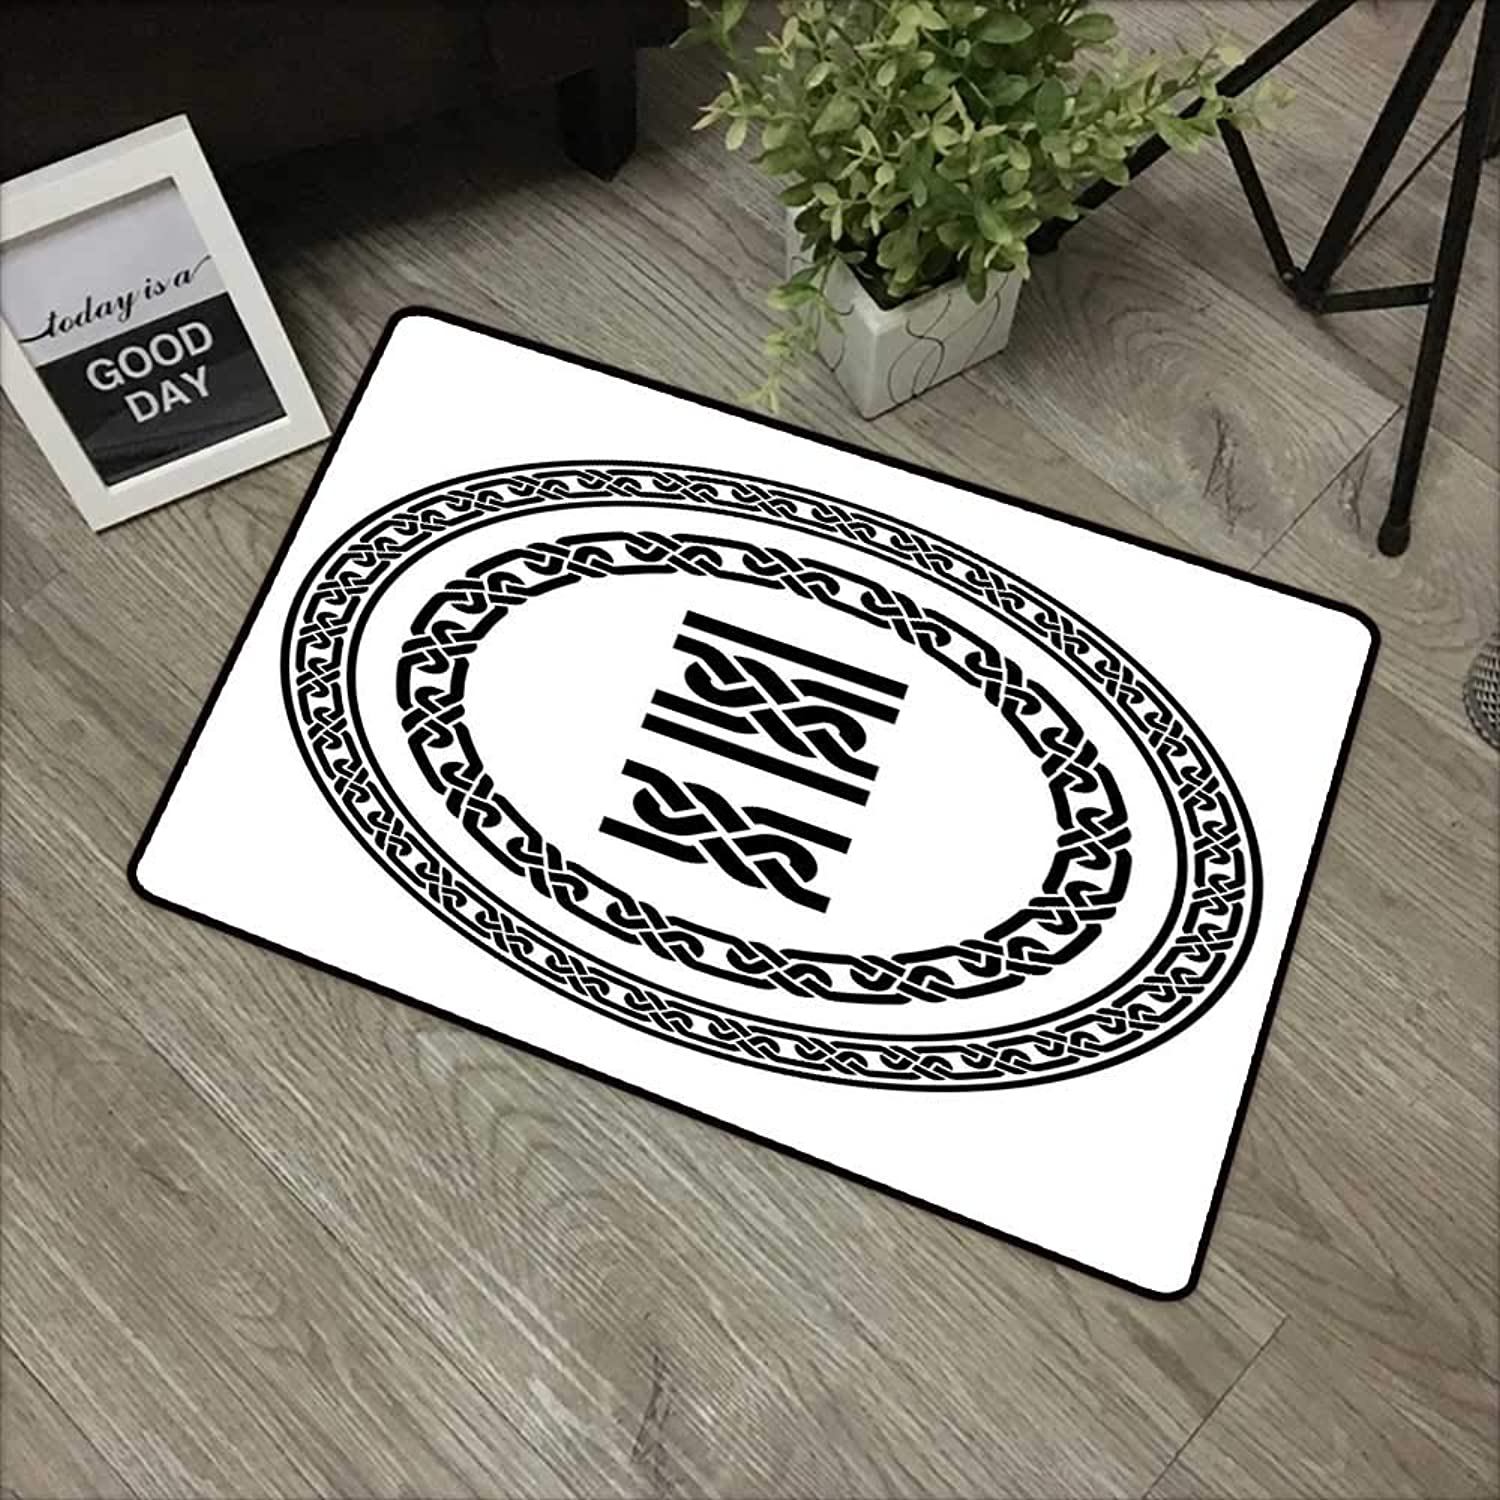 Learning pad W35 x L59 INCH Celtic,Old-Fashion Lace Celtic Knots Symbol Medieval Design Artsy Vikings Theme Graphic,Black White Easy to Clean, Easy to fold,Non-Slip Door Mat Carpet